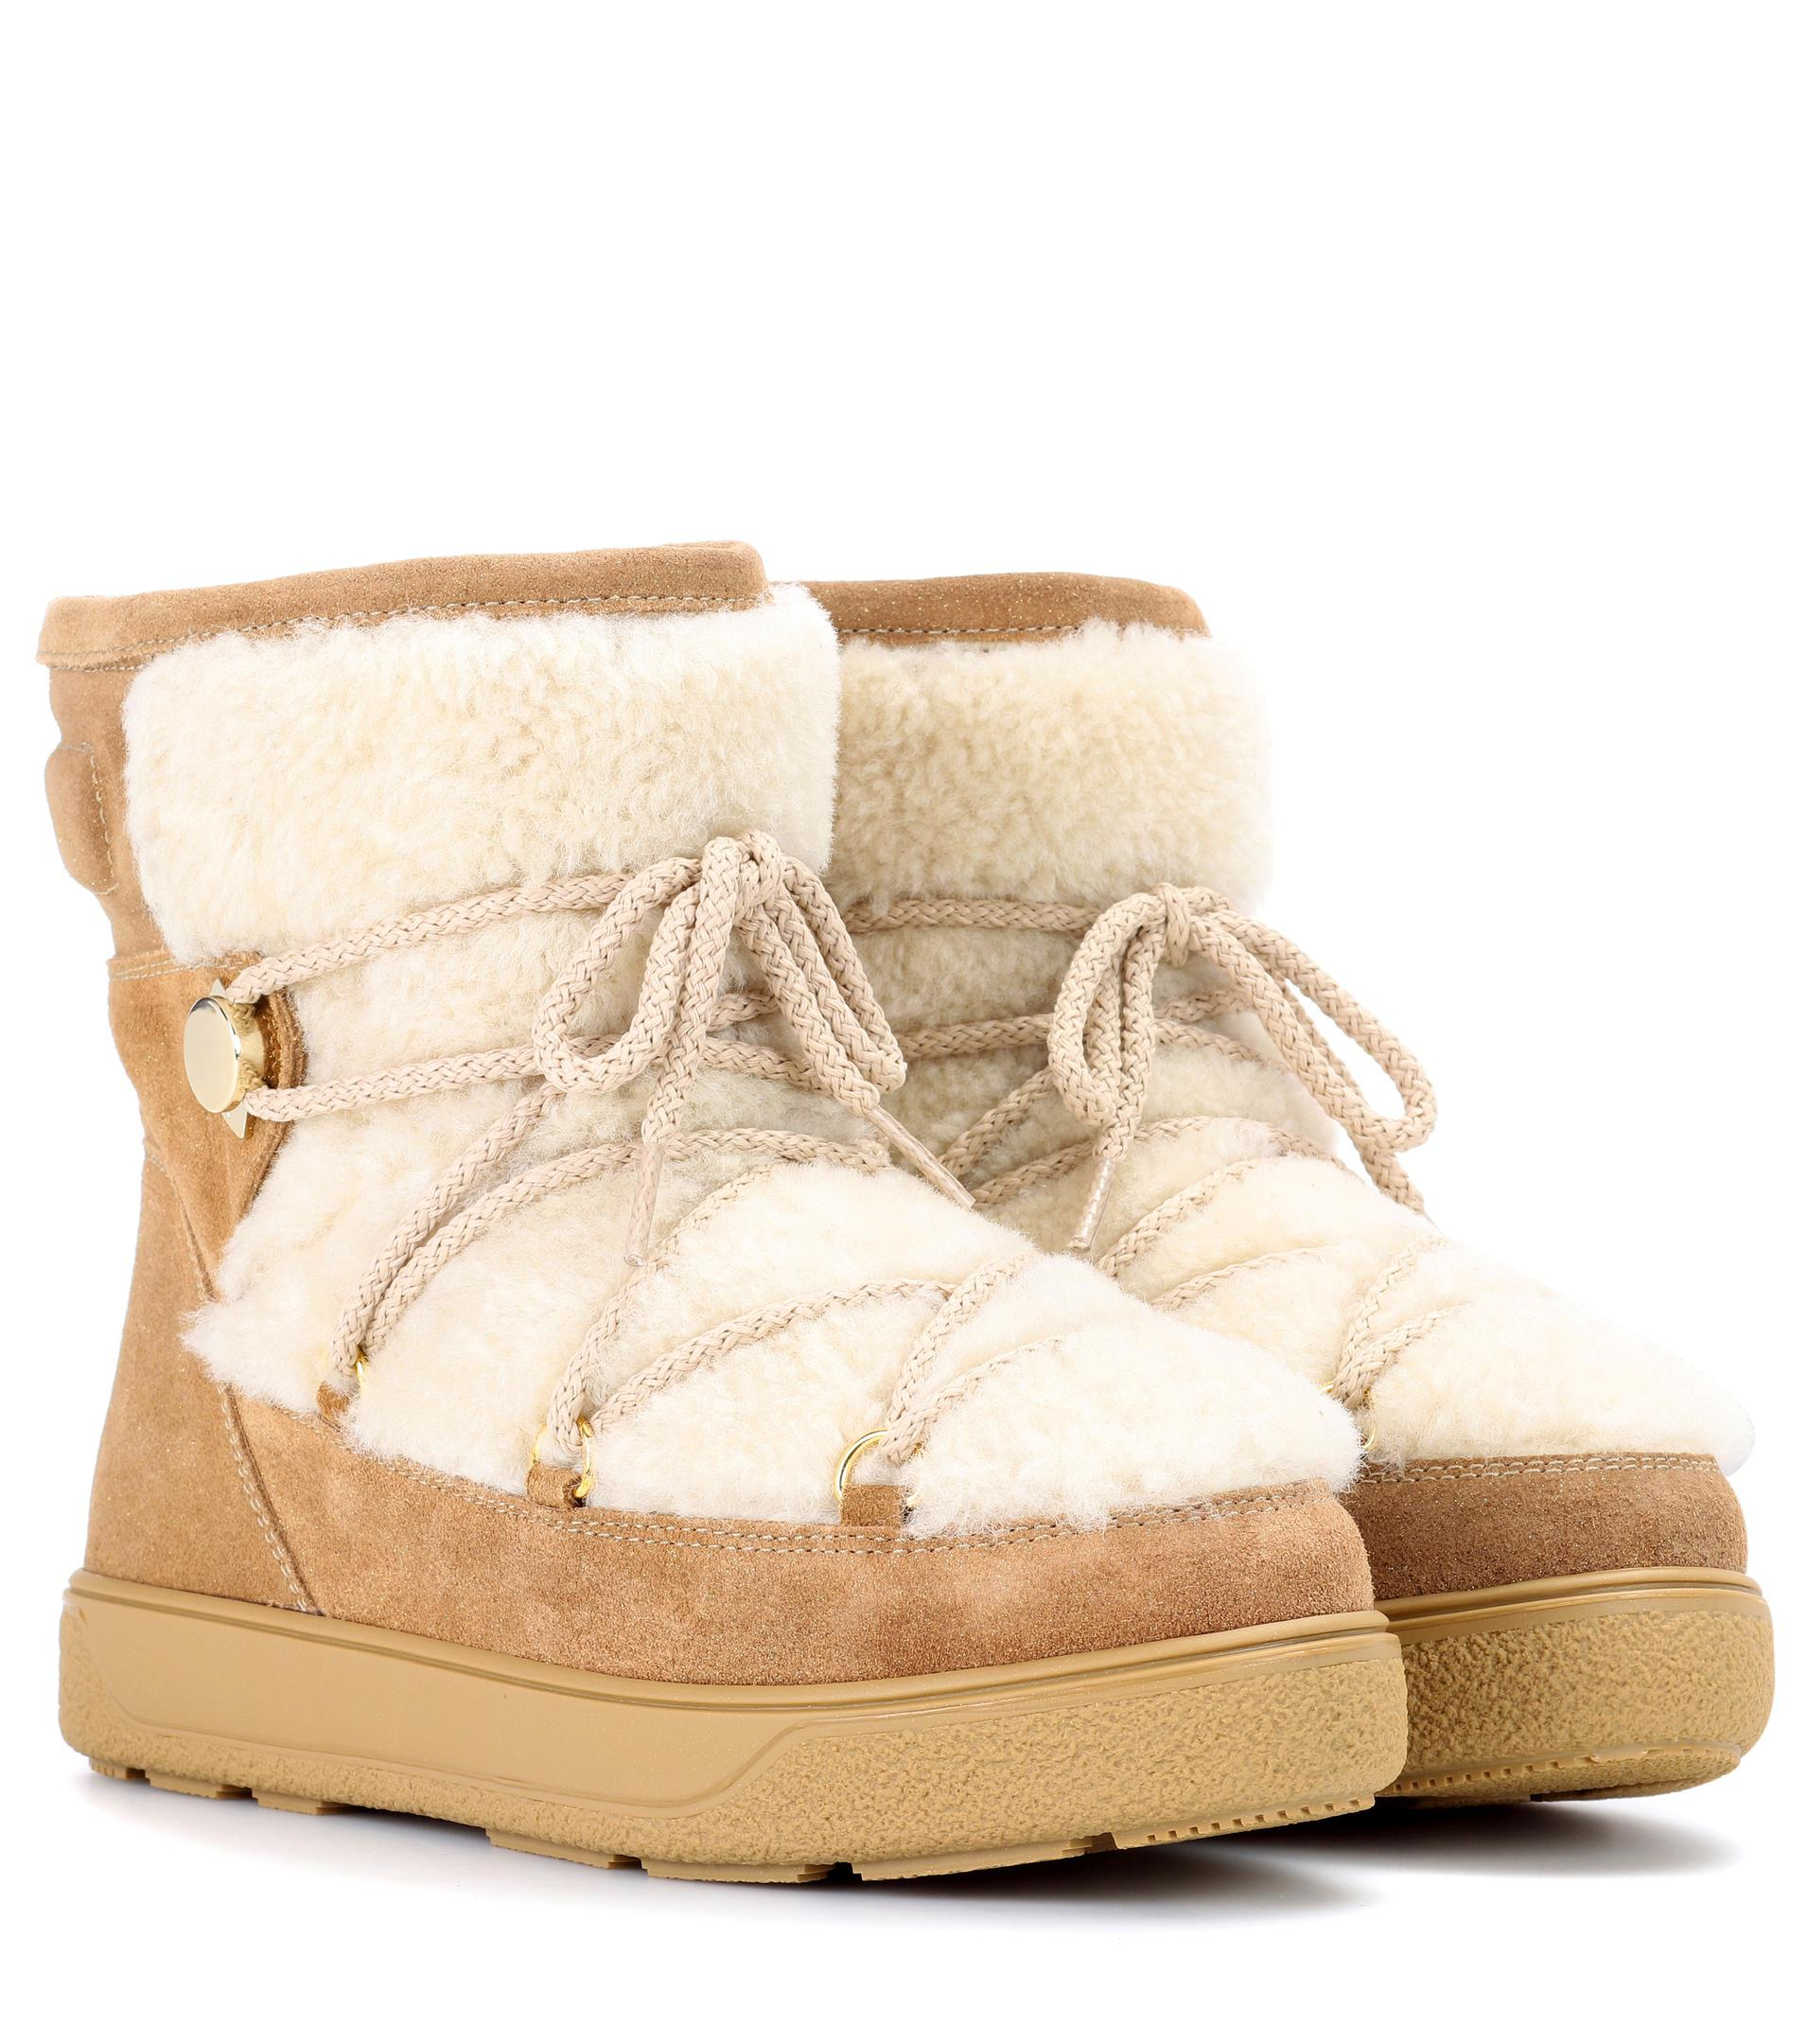 62cdb2482064 Lyst - Moncler New Fanny Suede Ankle Boots in Brown